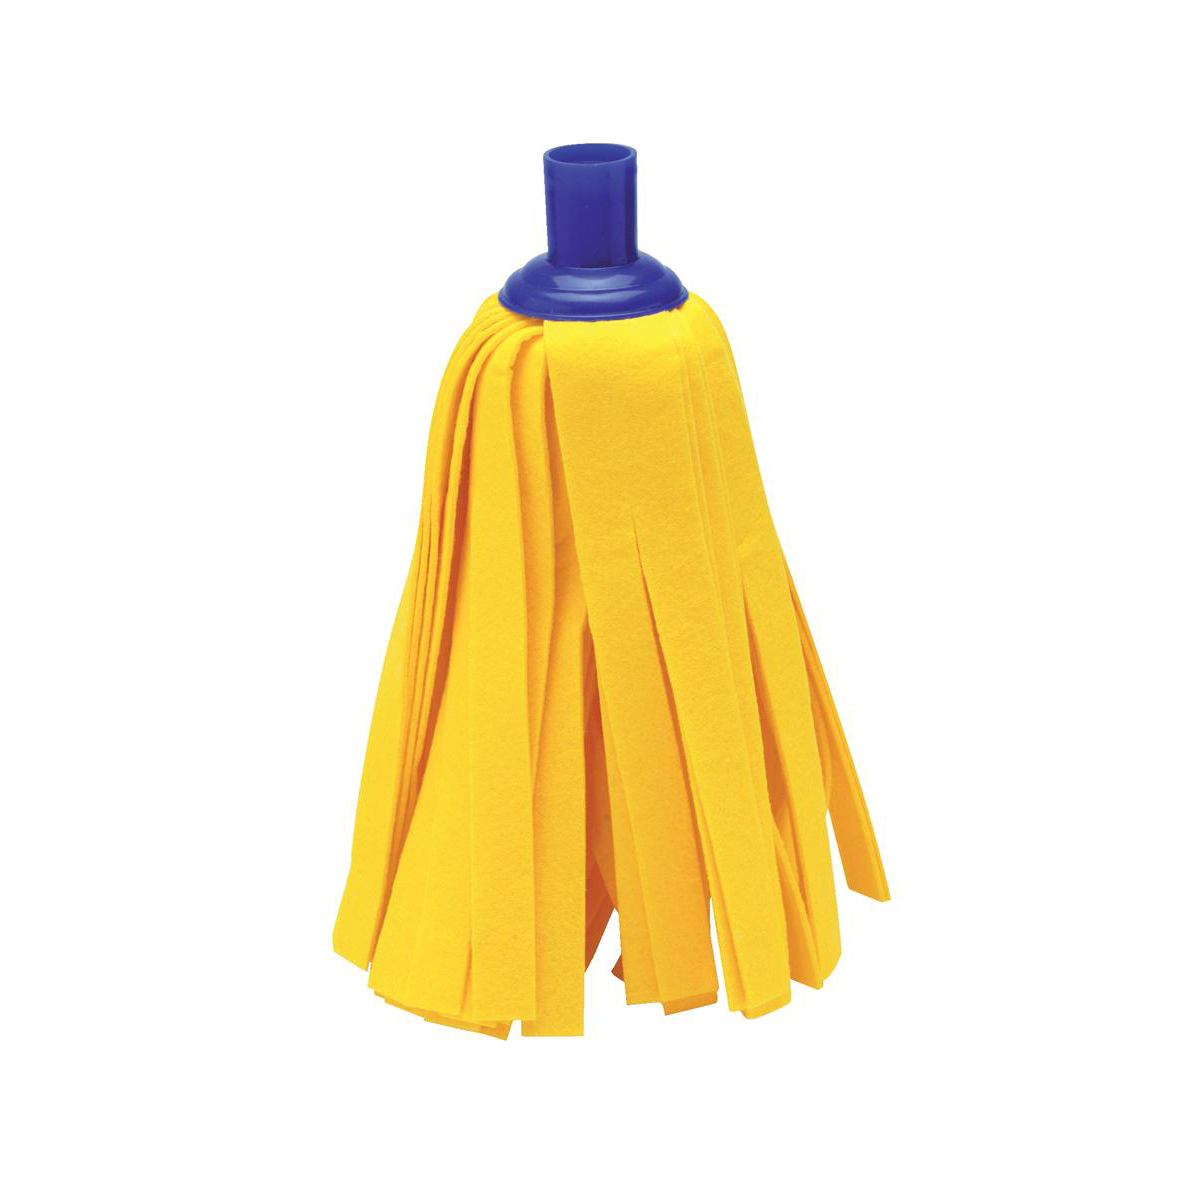 Mops & Buckets Addis Cloth Mop Head Refill Thick Absorbent Strands and Blue Socket Ref 510522